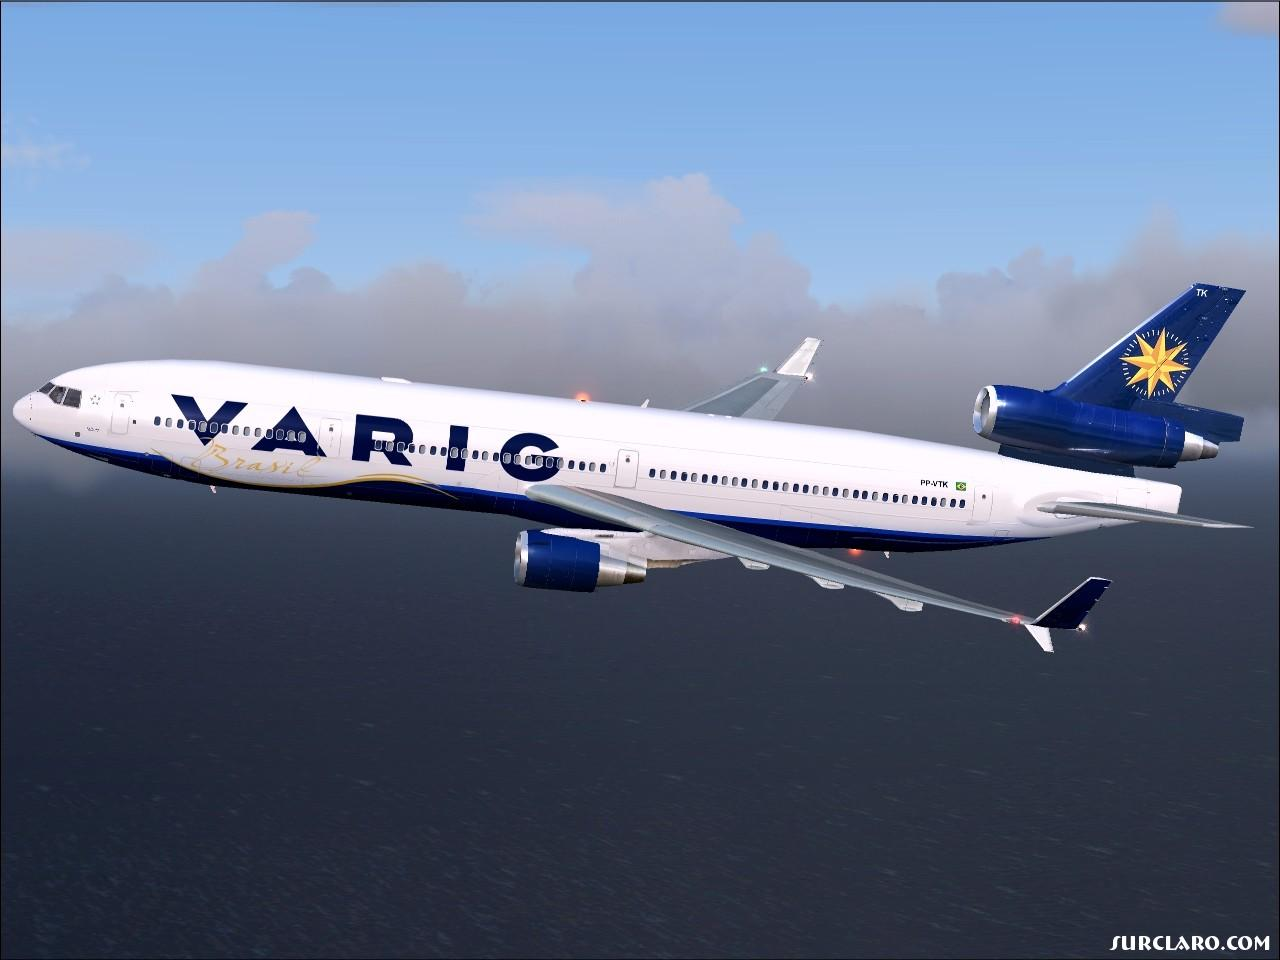 Fs2004 Varig Md 11 7643 Surclaro Photos